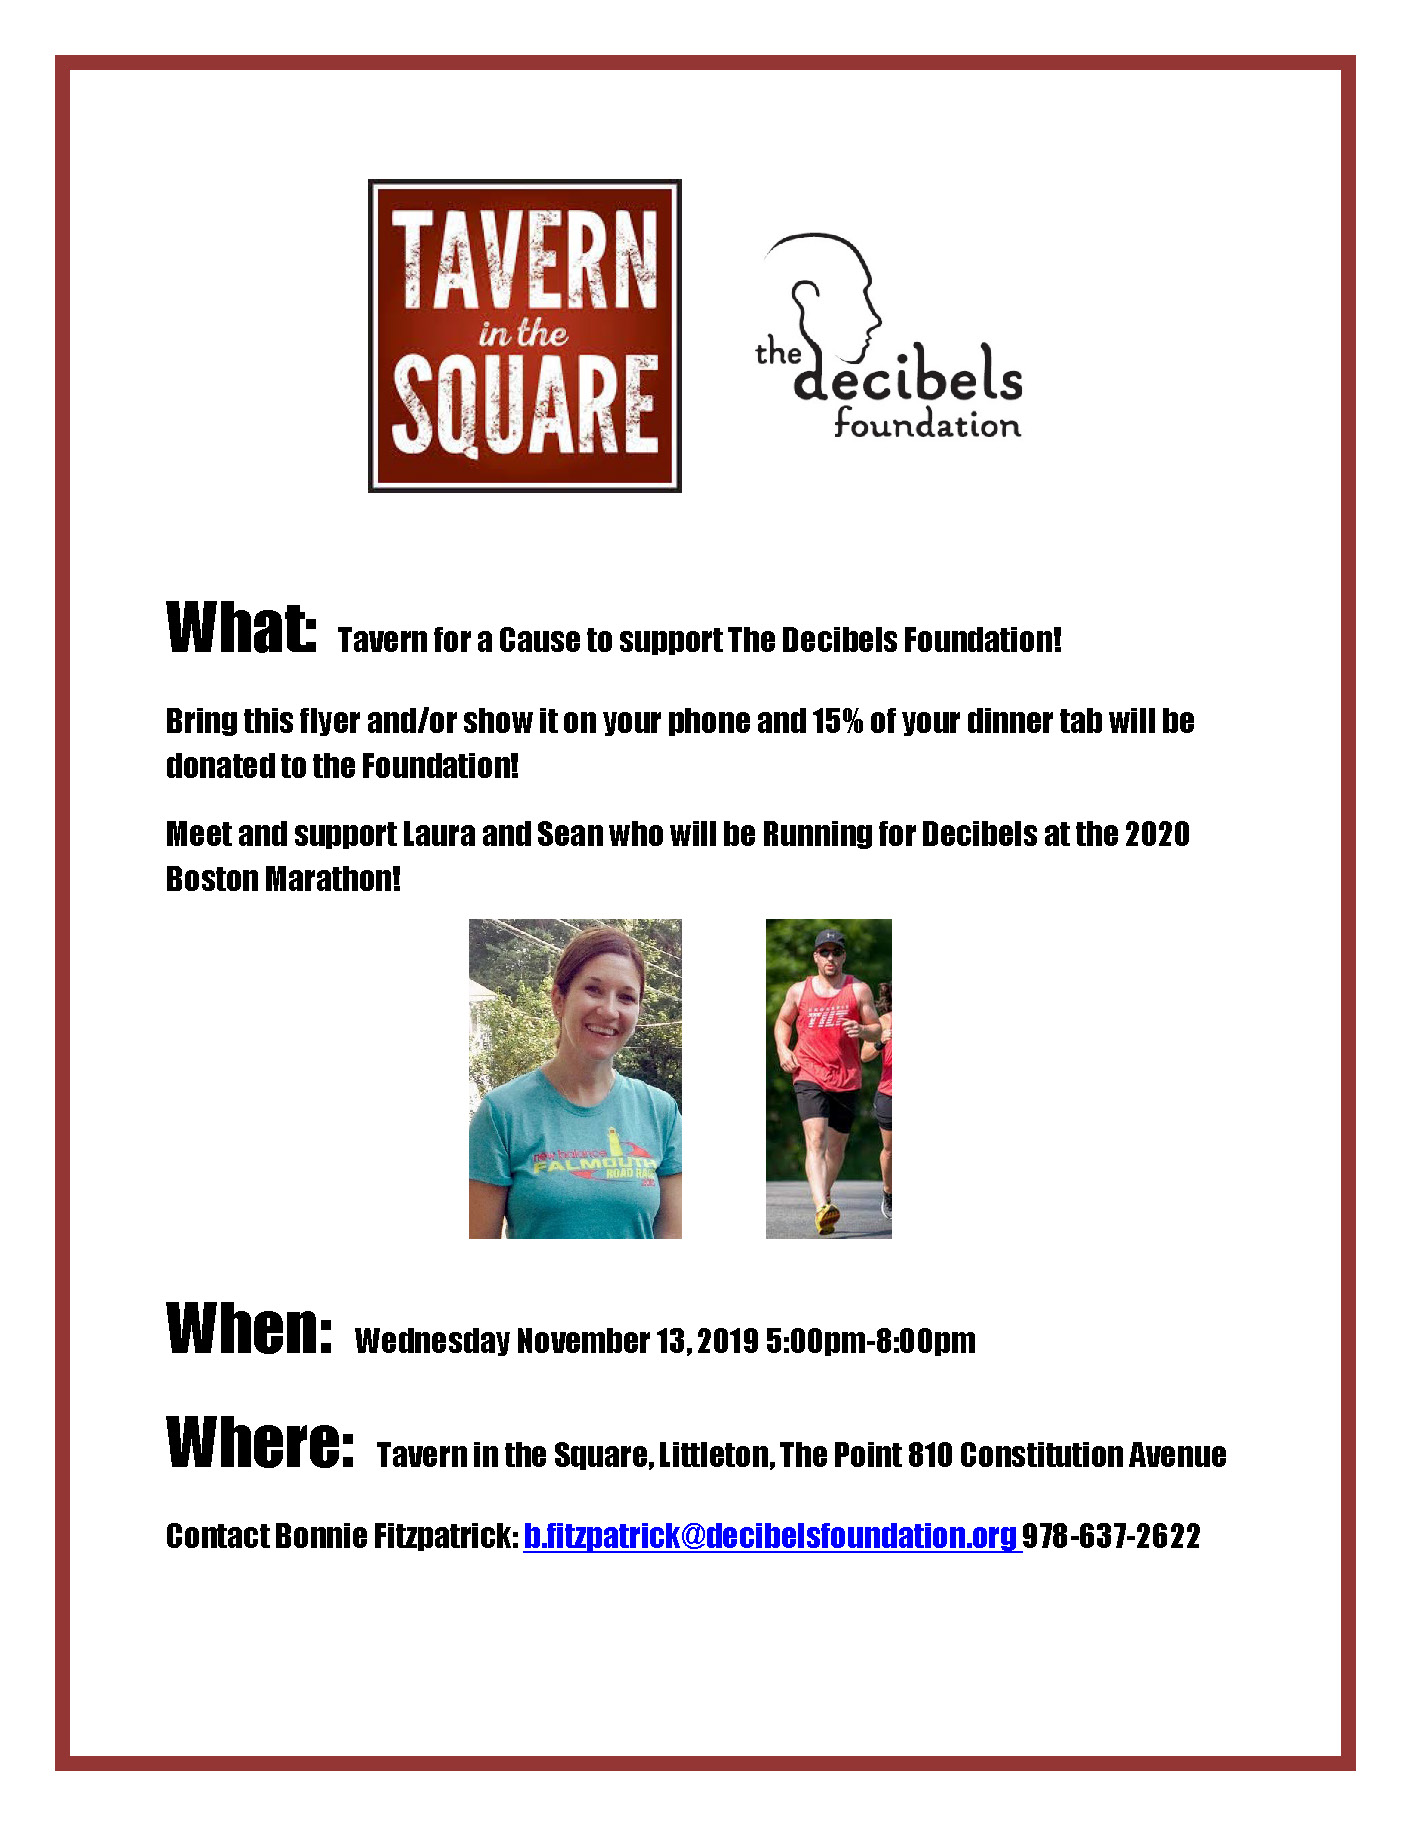 Tavern for a Cause Event